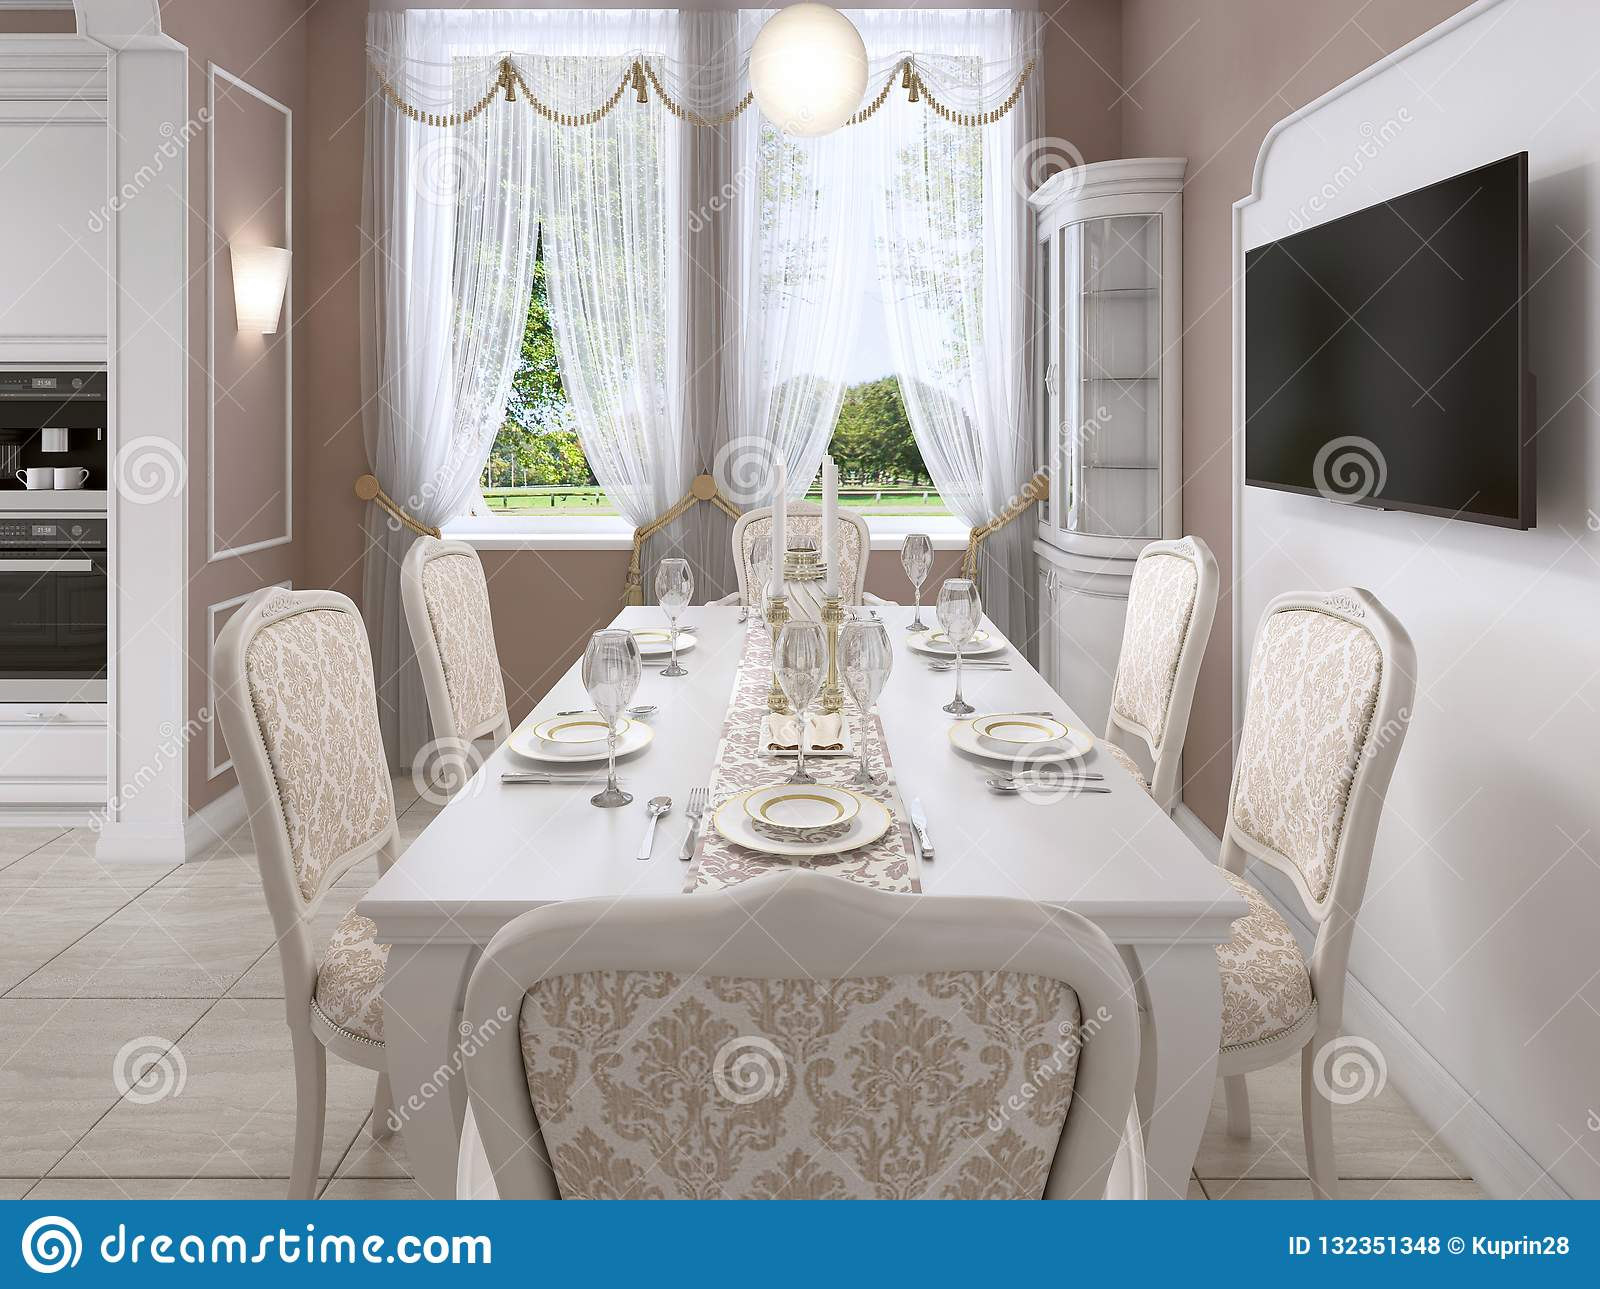 Miraculous Dining Room With White Table And Chairs For Six People With Uwap Interior Chair Design Uwaporg